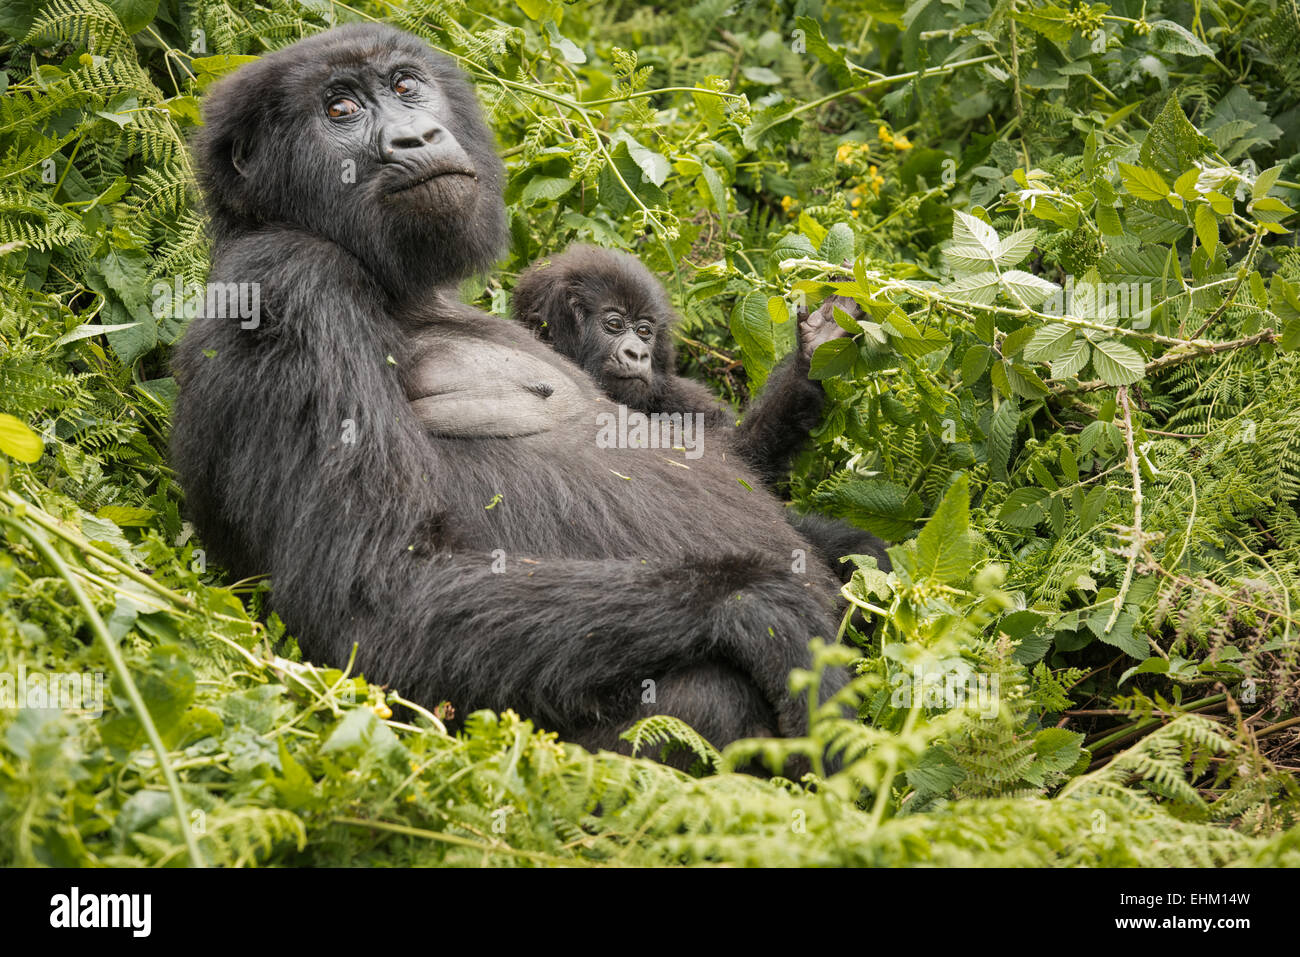 Stock photo of mountain gorilla in Volcanoes National Park, Rwanda (Sabyinyo group) - Stock Image